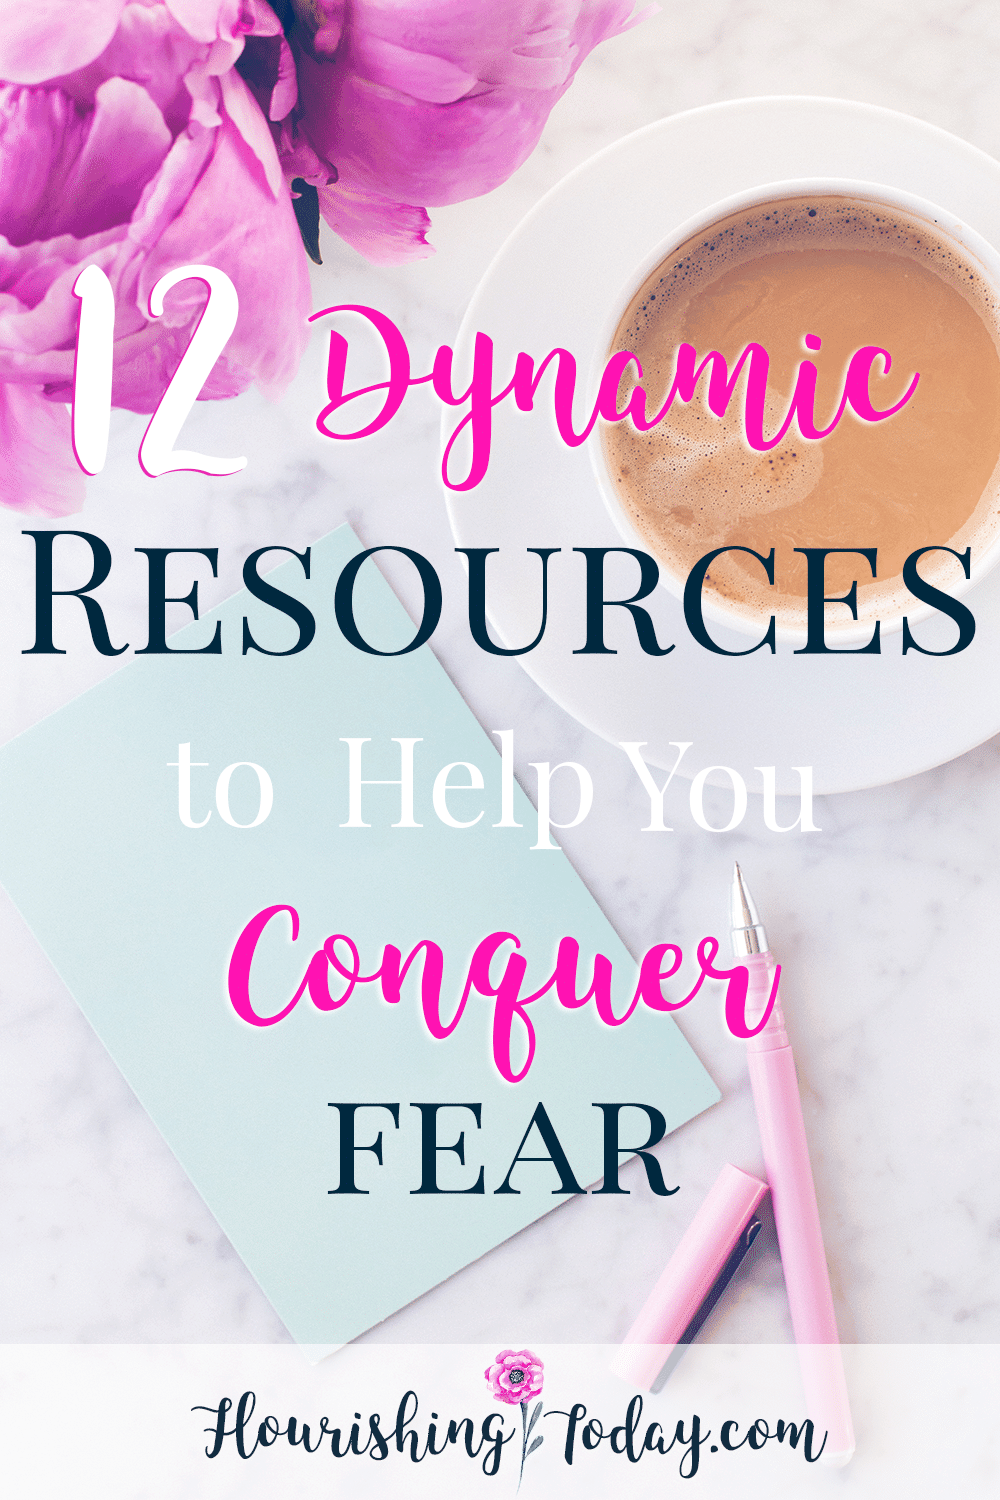 How do you conquer fear? Fear is not a one time war, but an ongoing battle. Here are 12 Dynamic Resources to Help you to Conquer Fear when it rises up.